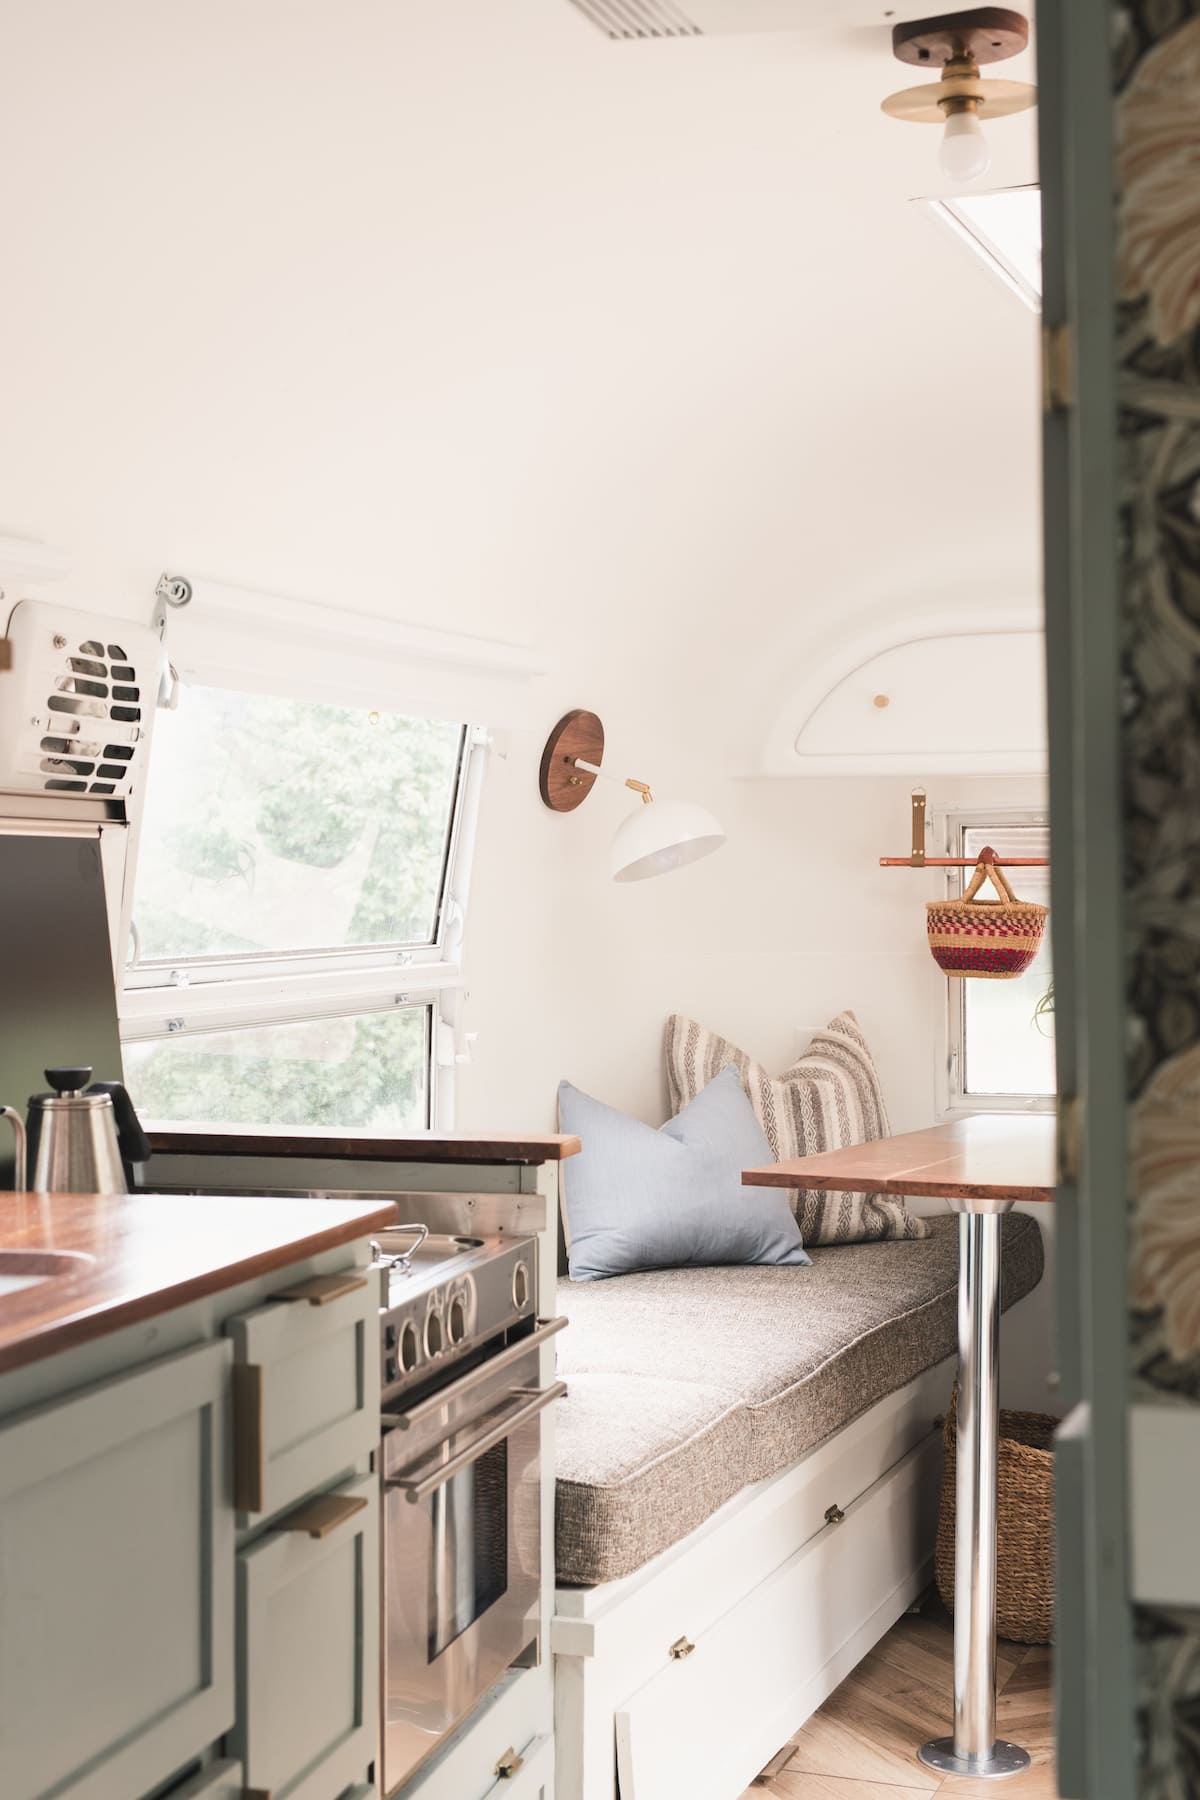 marjorie airstream 3 - This renovated Airstream trailer is all floral and boho-chic charm